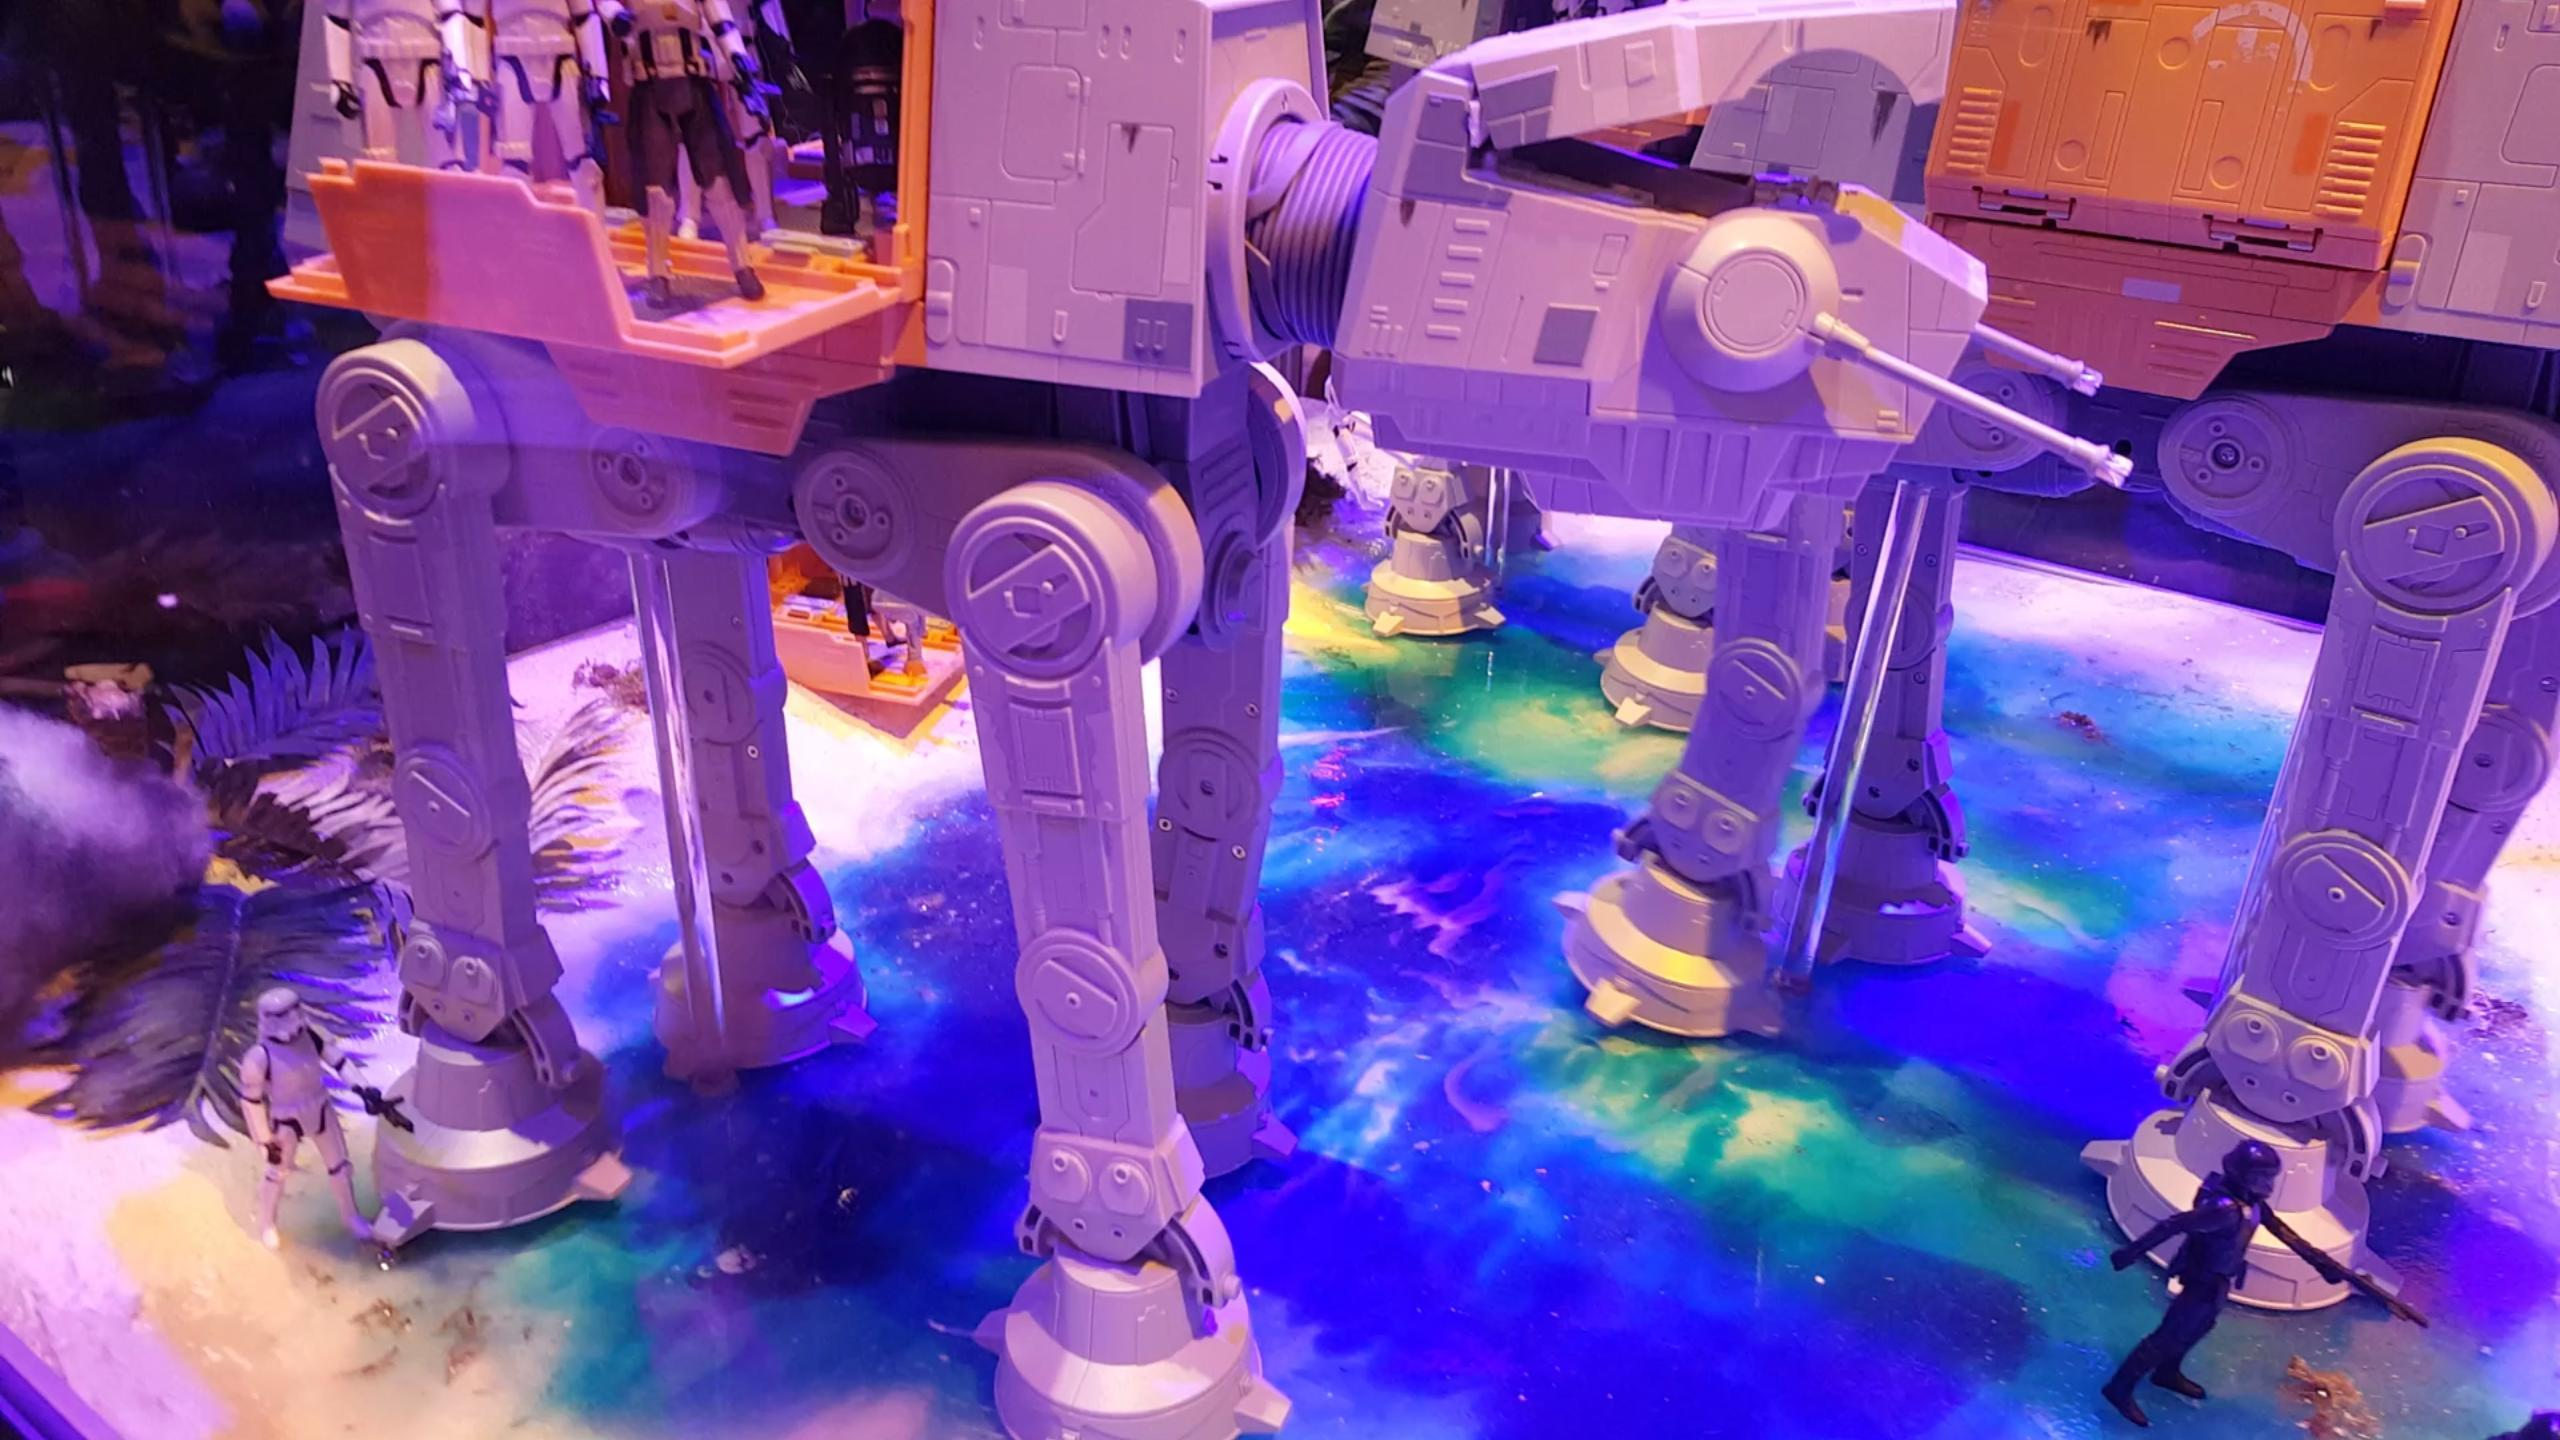 Star Wars 'Rogue One' AT-ACT unveiled by Hasbro at SDCC 2016